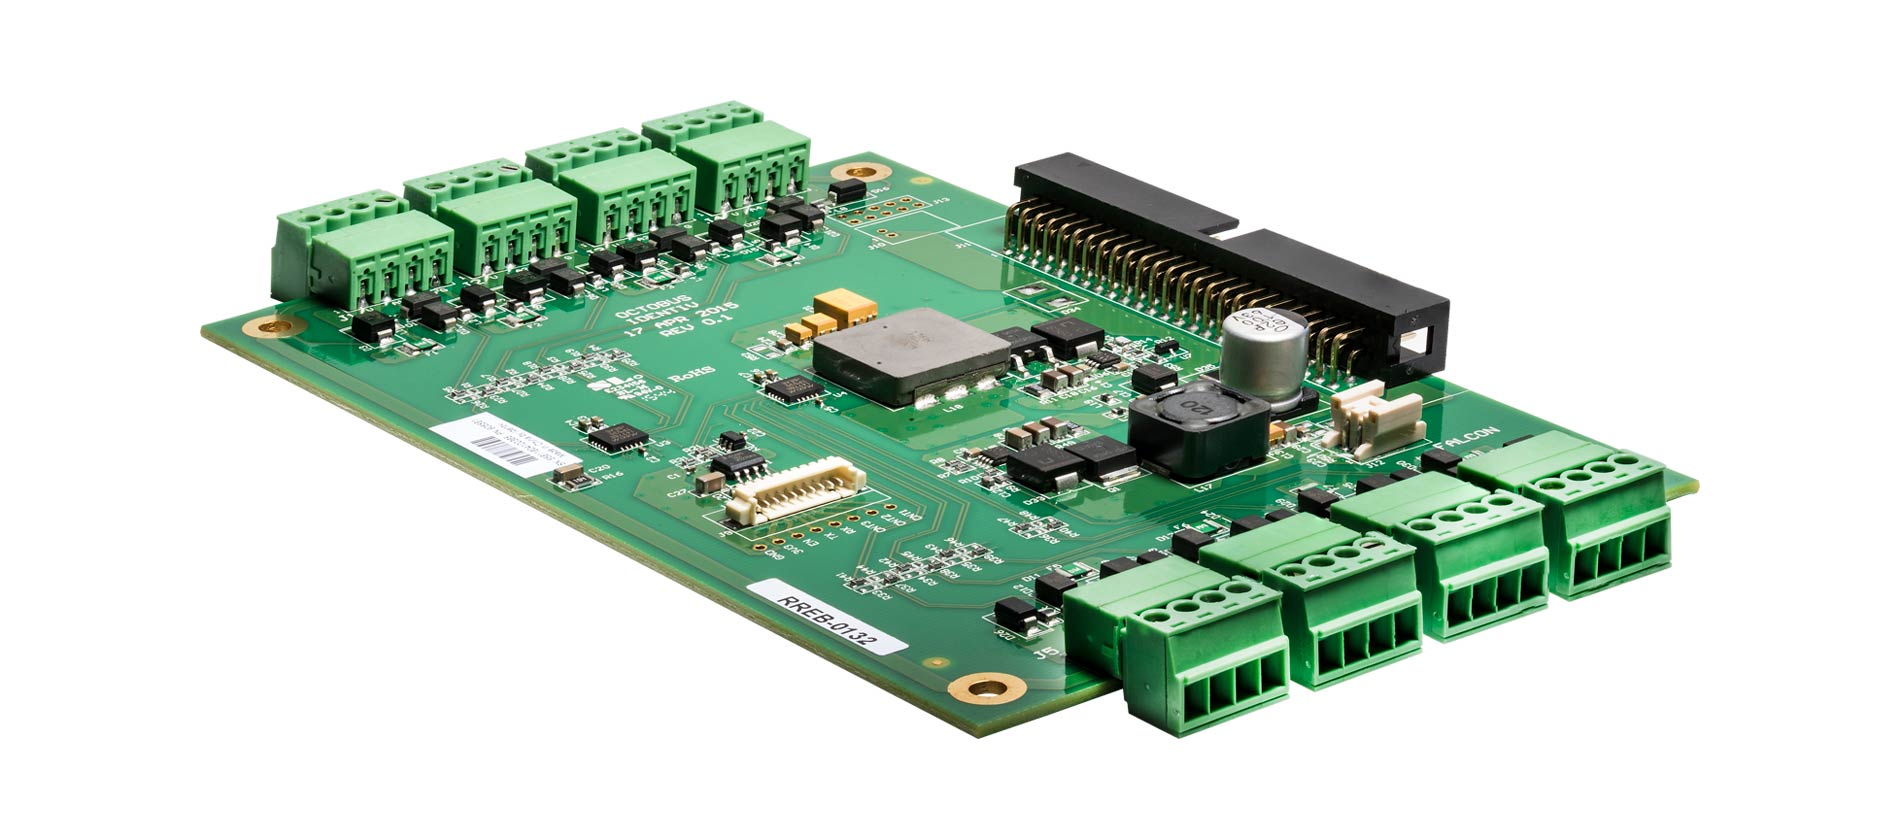 Identiv RS-485 Reader Expansion Board (RREB)